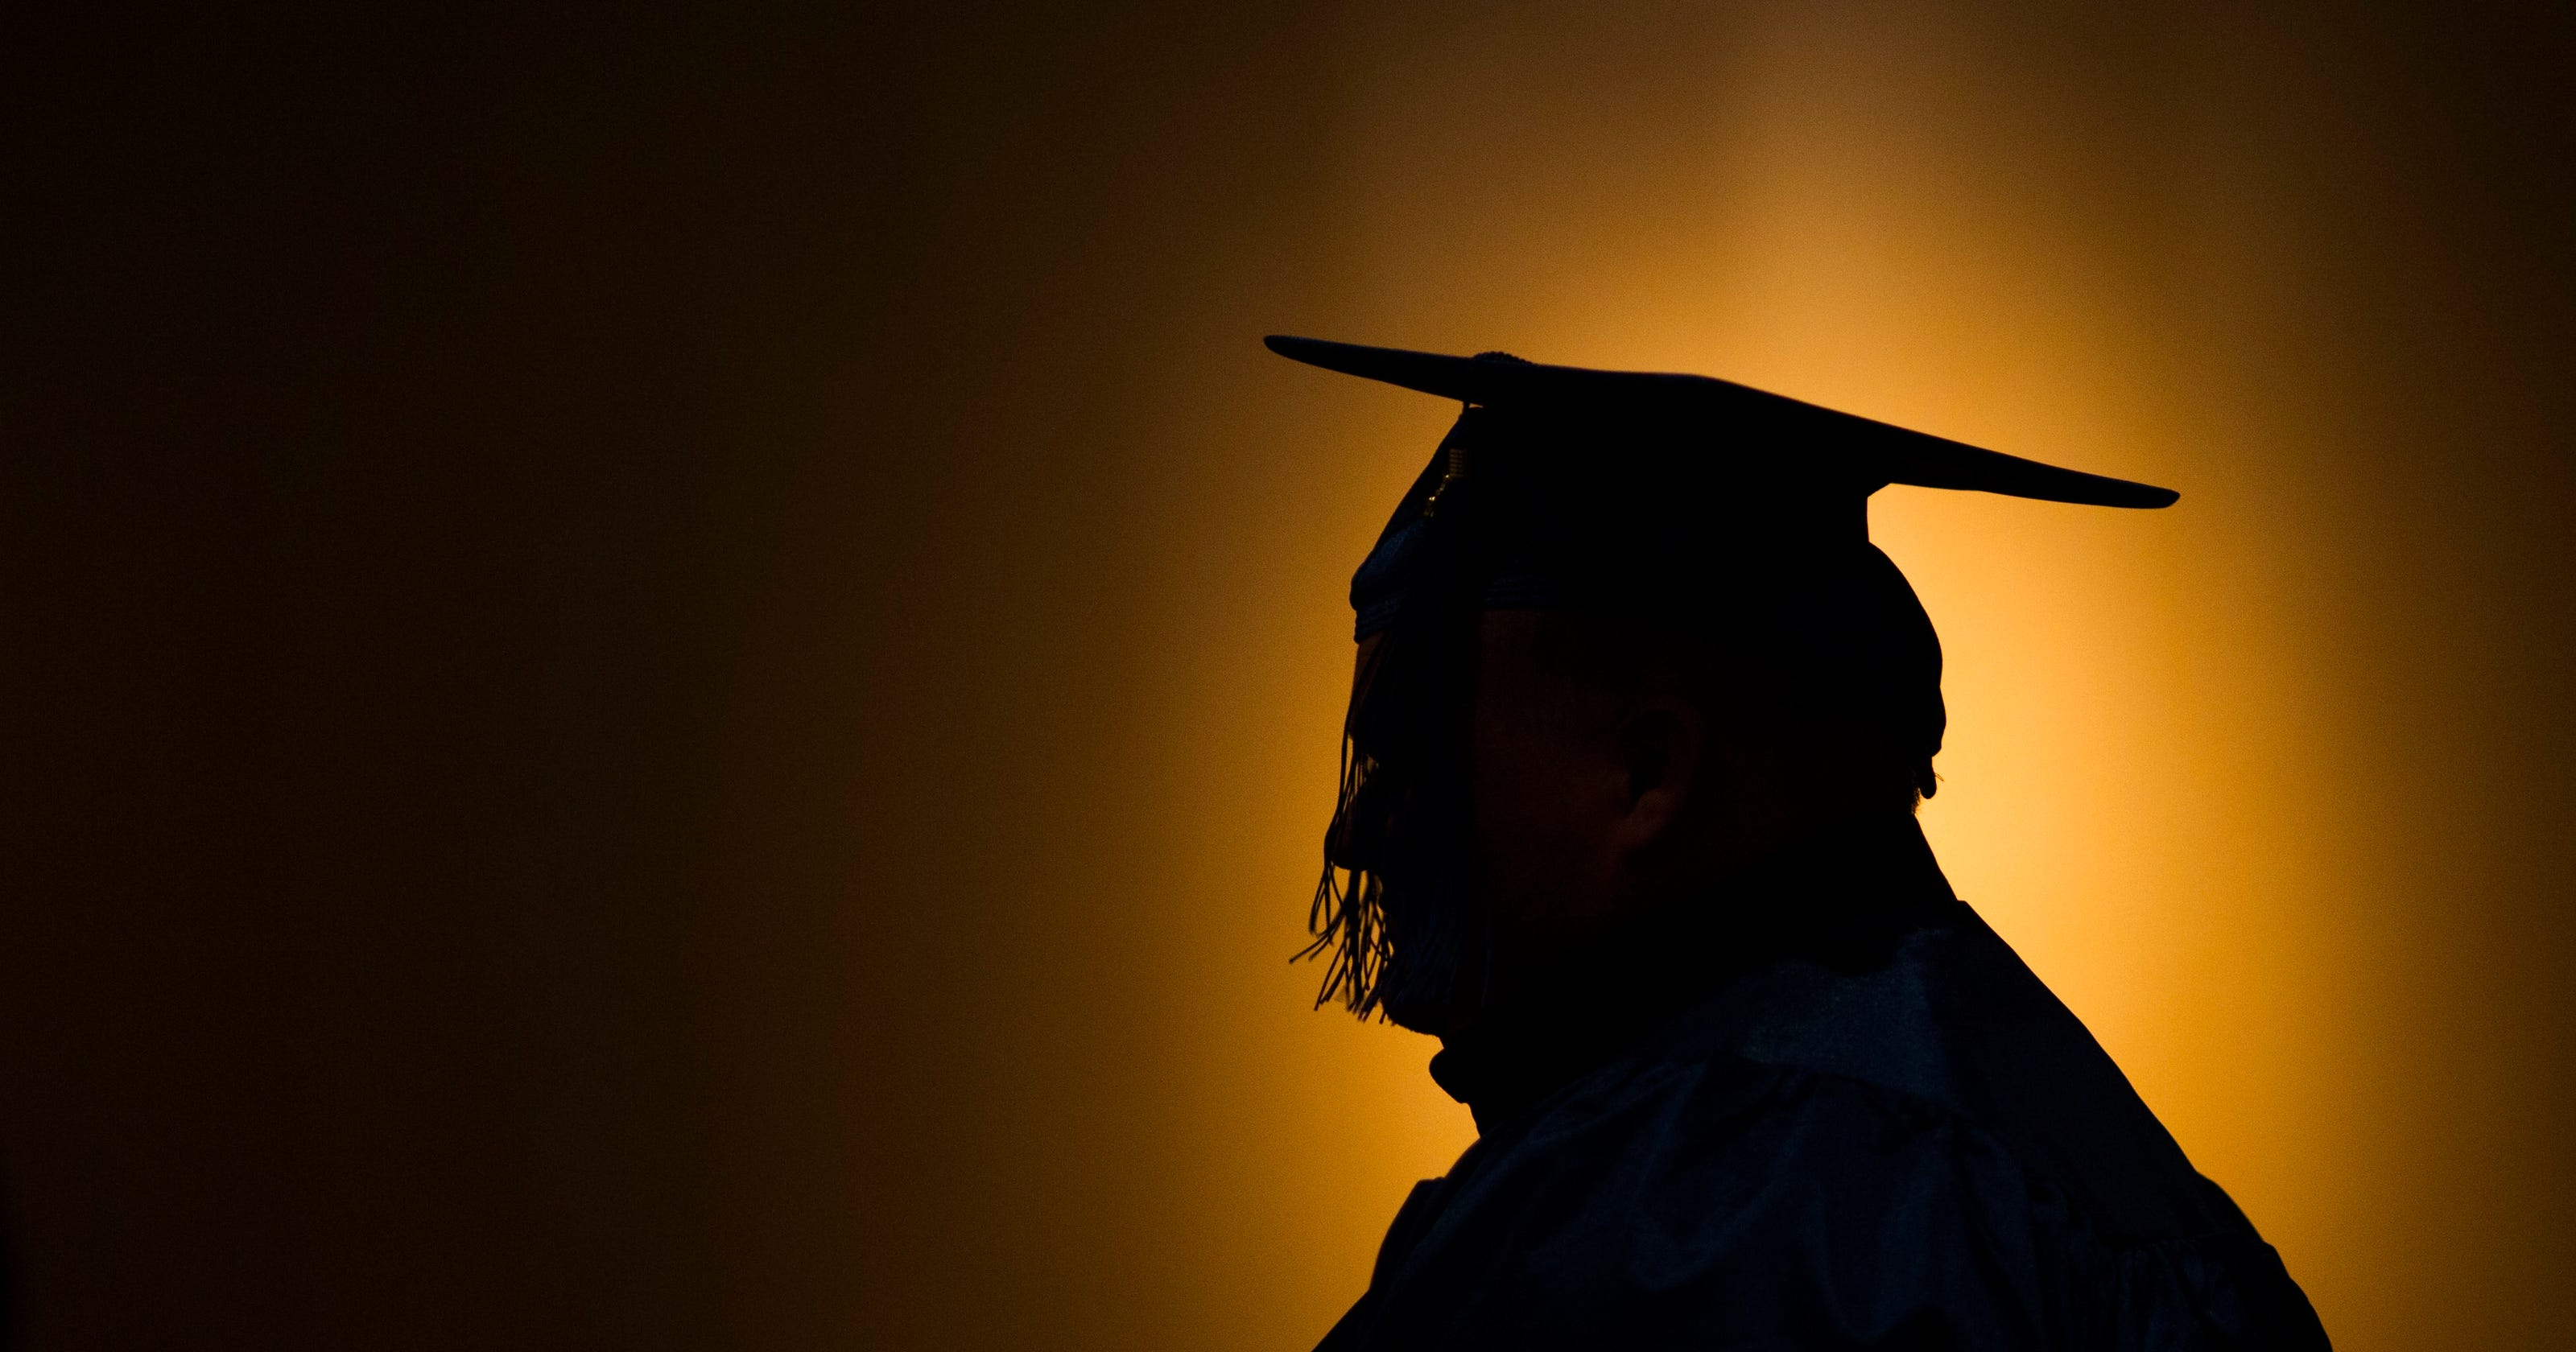 Phoenix offers free diploma program for high school dropouts